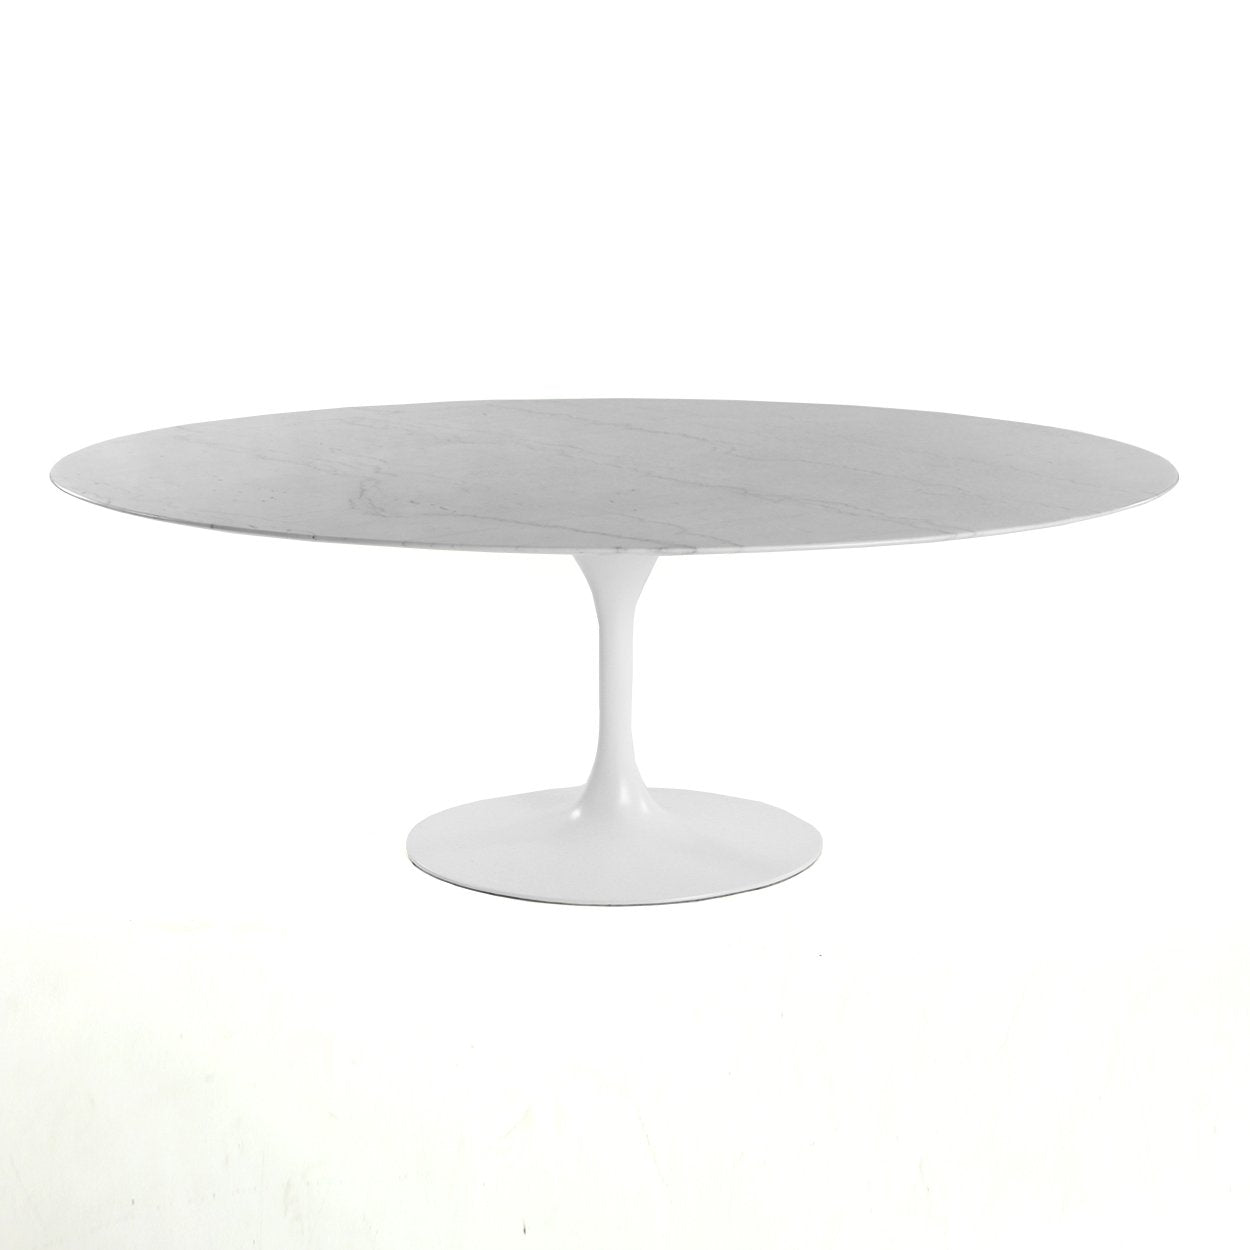 [FET8316AWHT] The Marble Tulip Dining Table